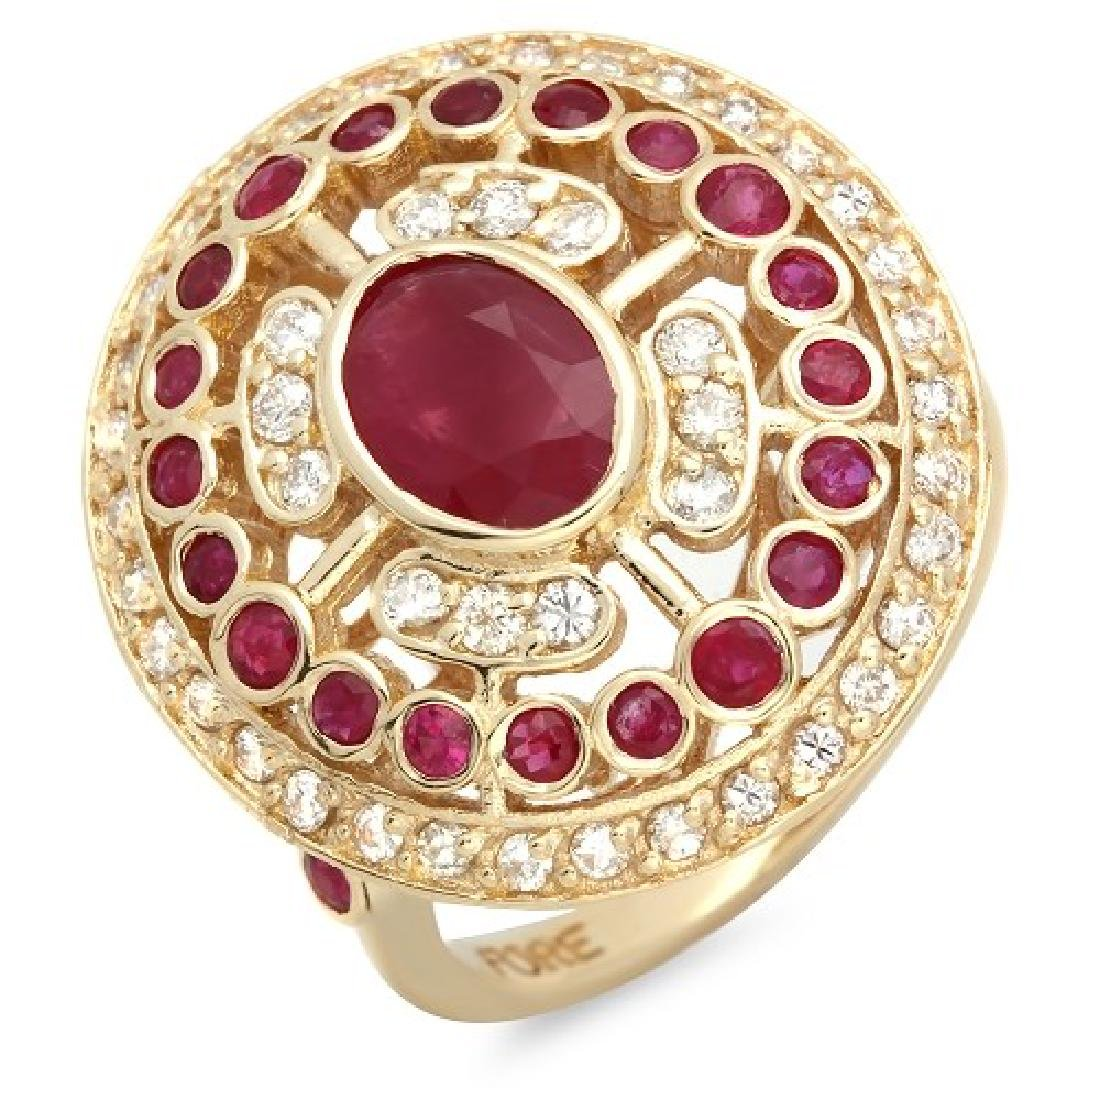 2.60 Carat Natural Ruby 18K Solid Yellow Gold Diamond